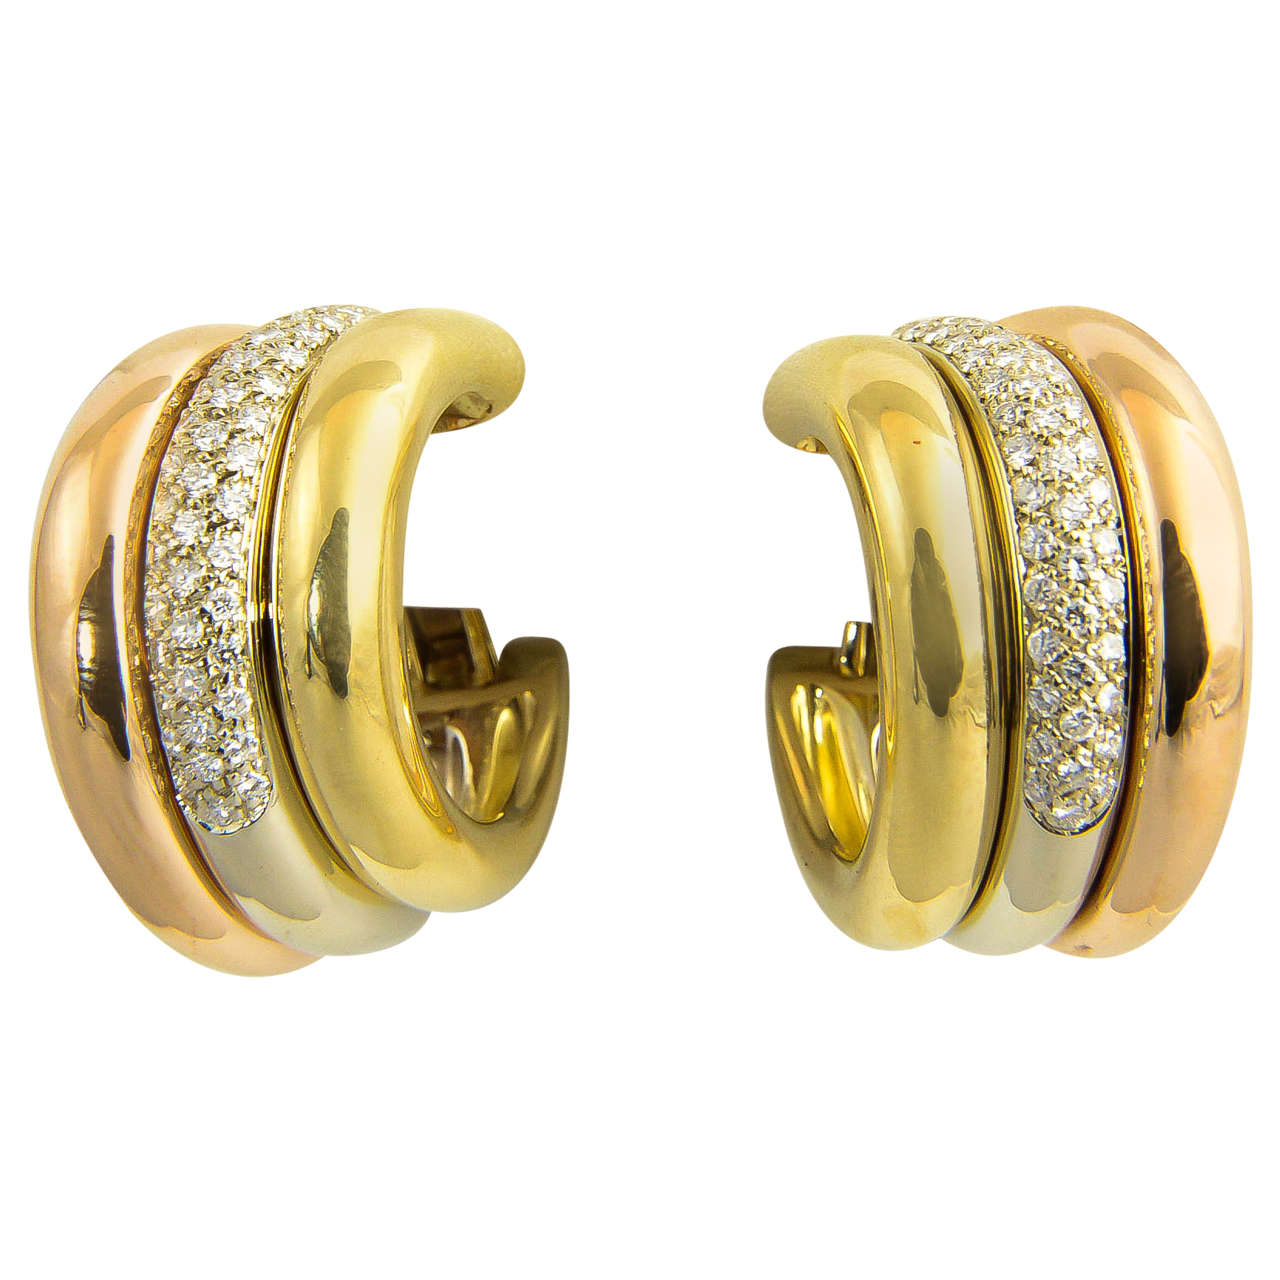 1970's Cartier Diamond And Tri Color Gold Hoop Earrings 1